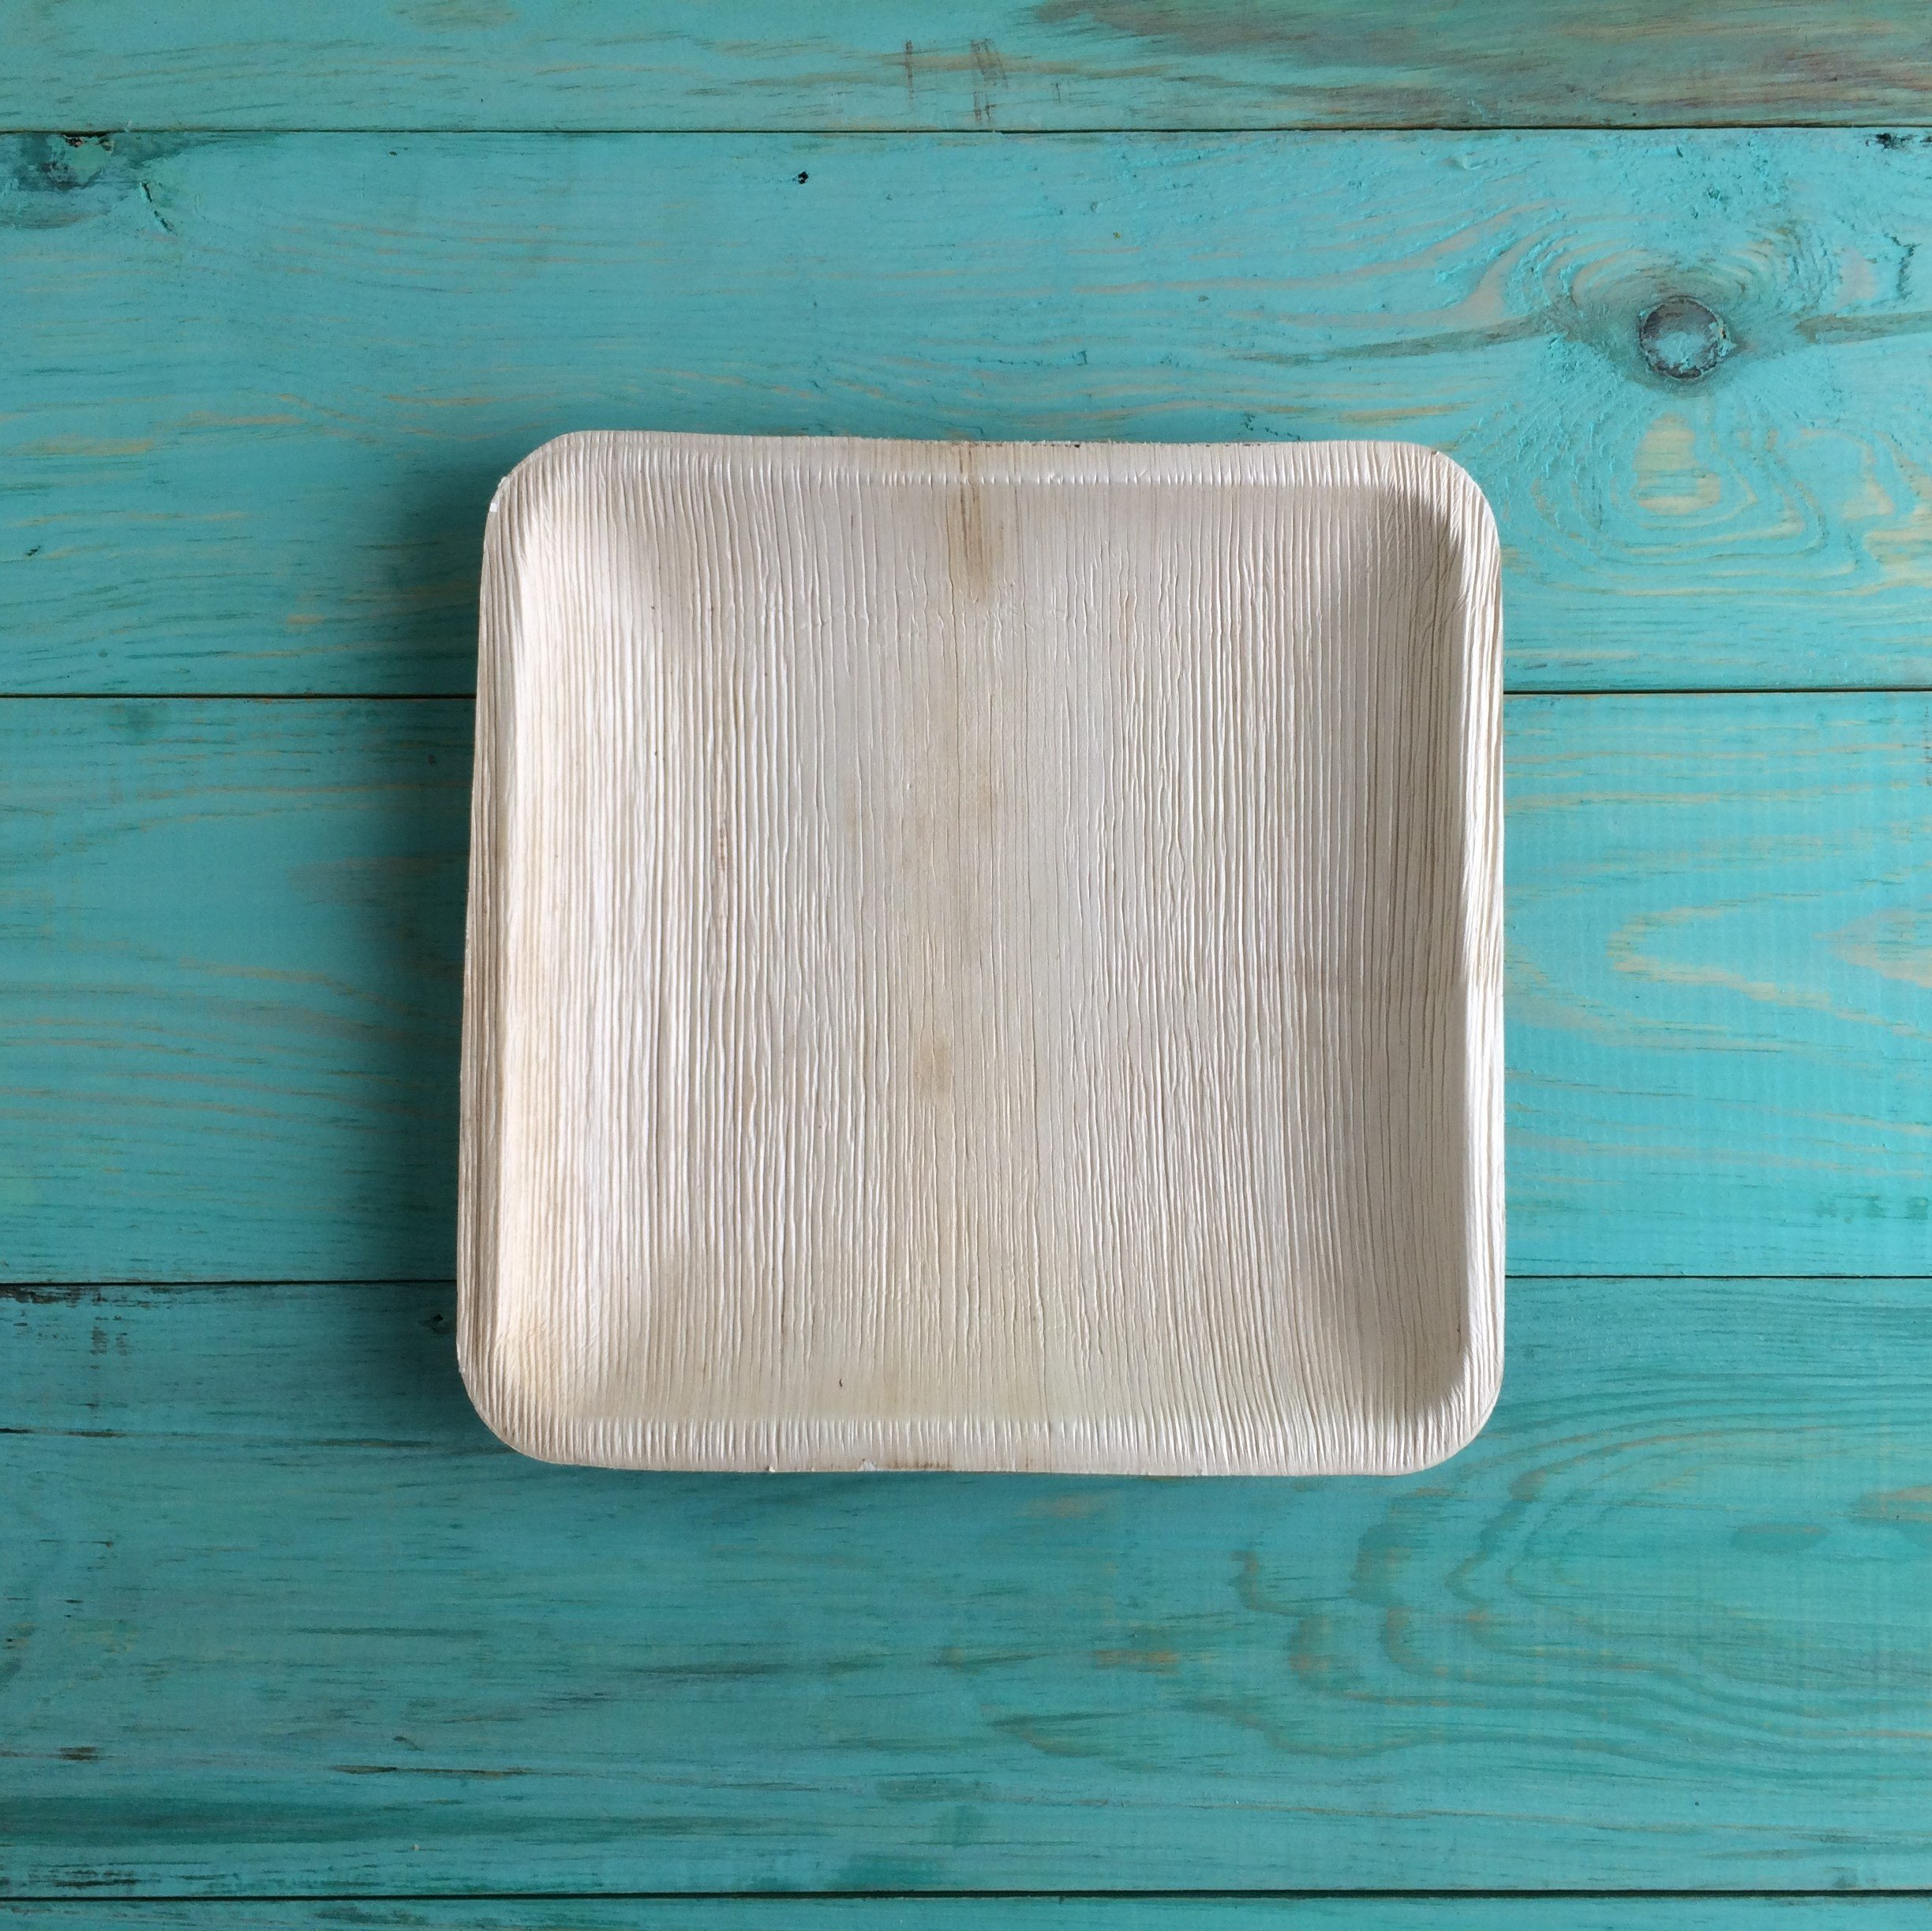 Disposable Plates Made of Palm Leaf: Heavy Duty & Eco - Better Than Wood & Bamboo- Square Shape (6'' Square Plate - 25 Pcs, Peach to tan) by Adaaya (Image #5)